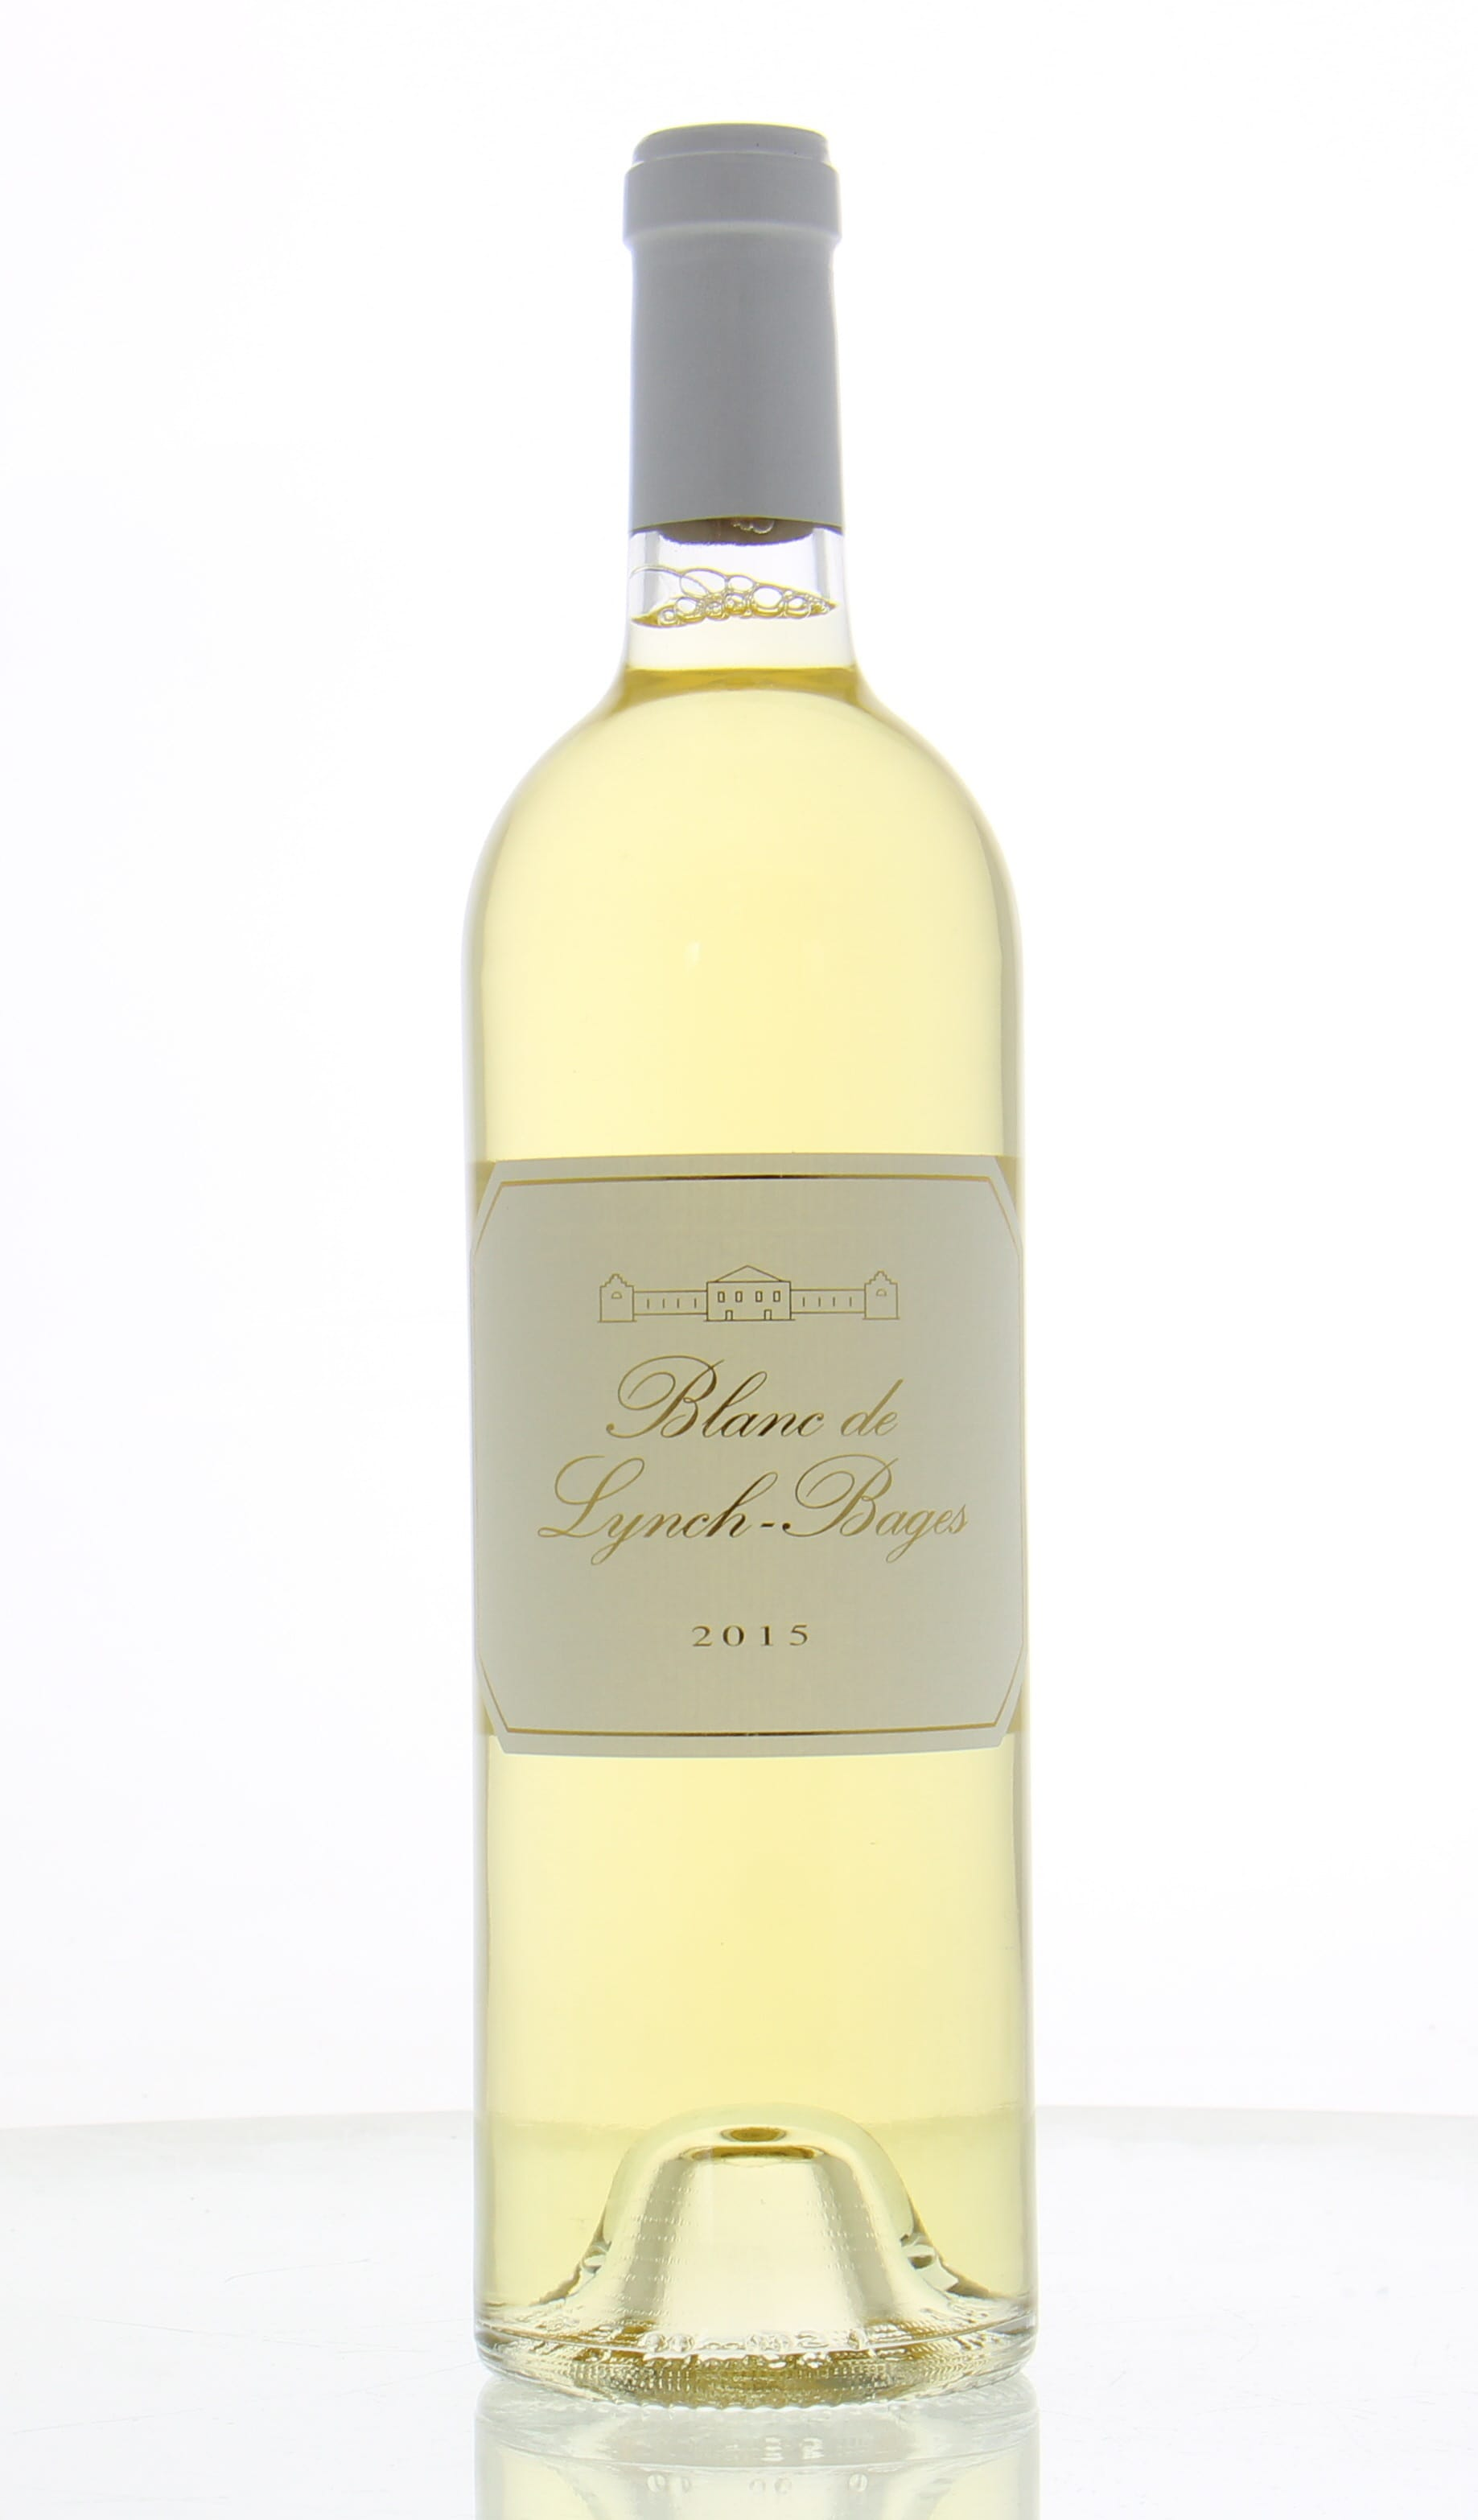 Chateau Lynch Bages Blanc - Chateau Lynch Bages Blanc 2015